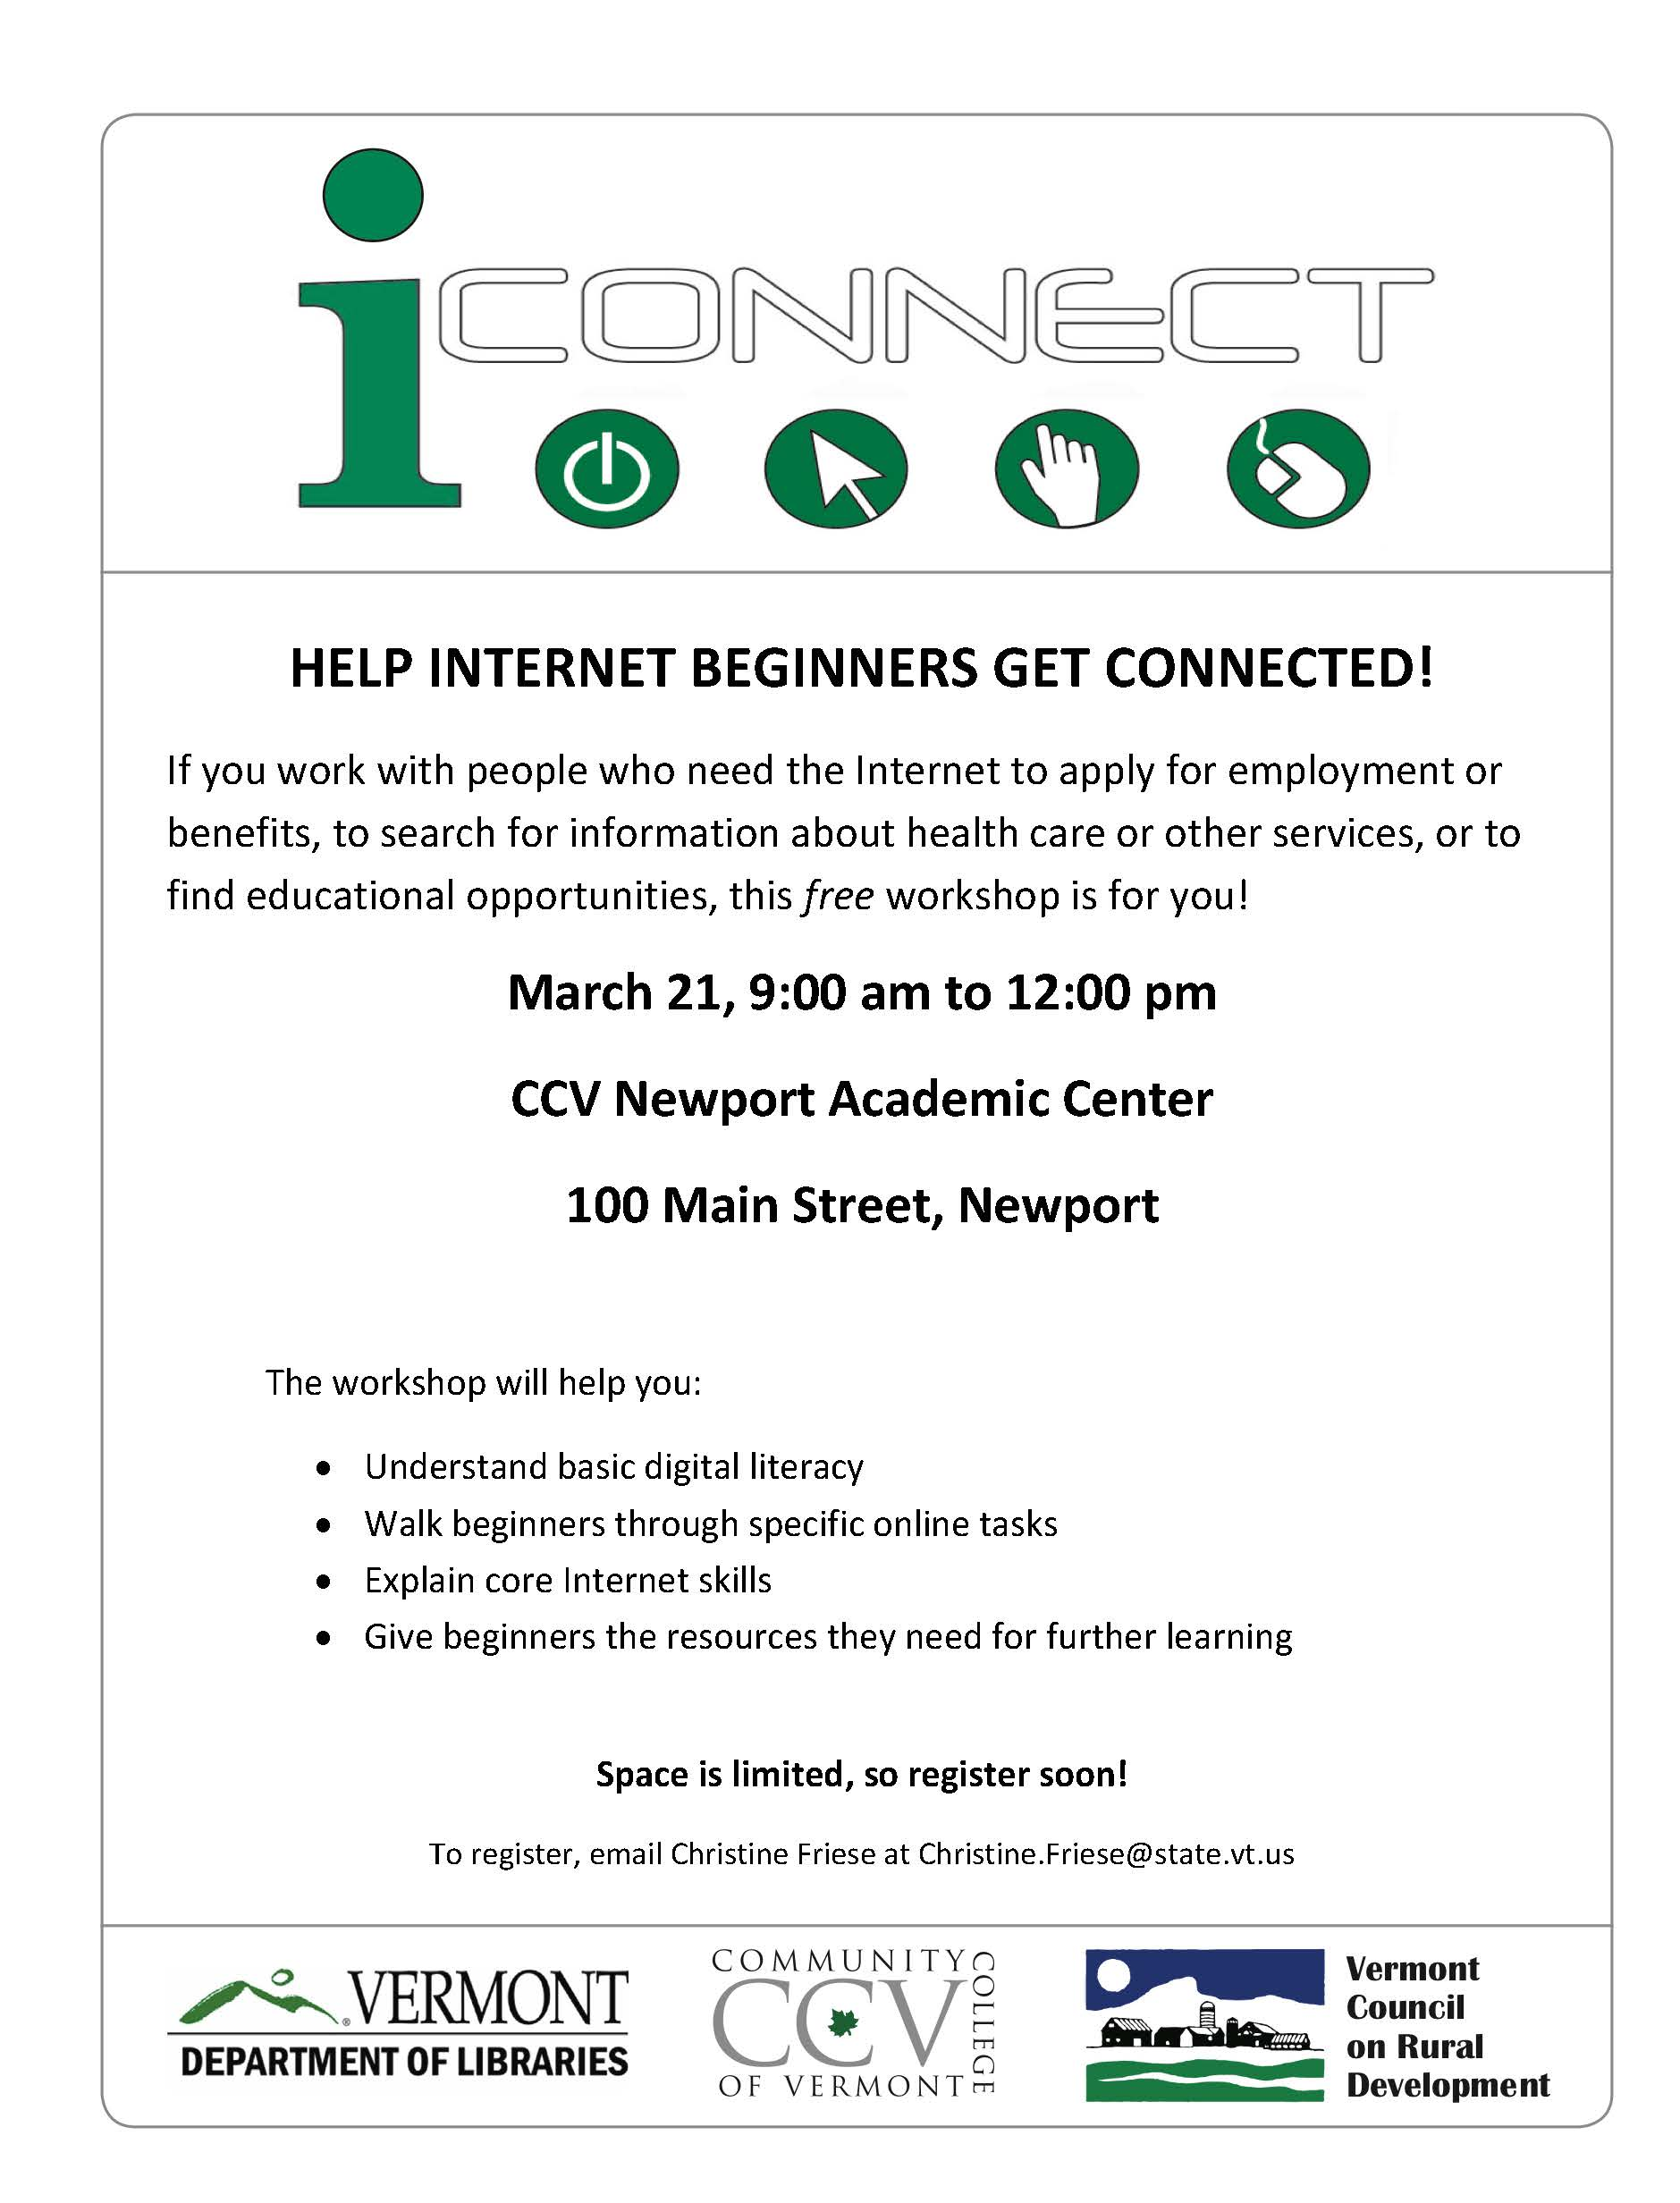 iConnect: Help Internet Beginners Get Connected!